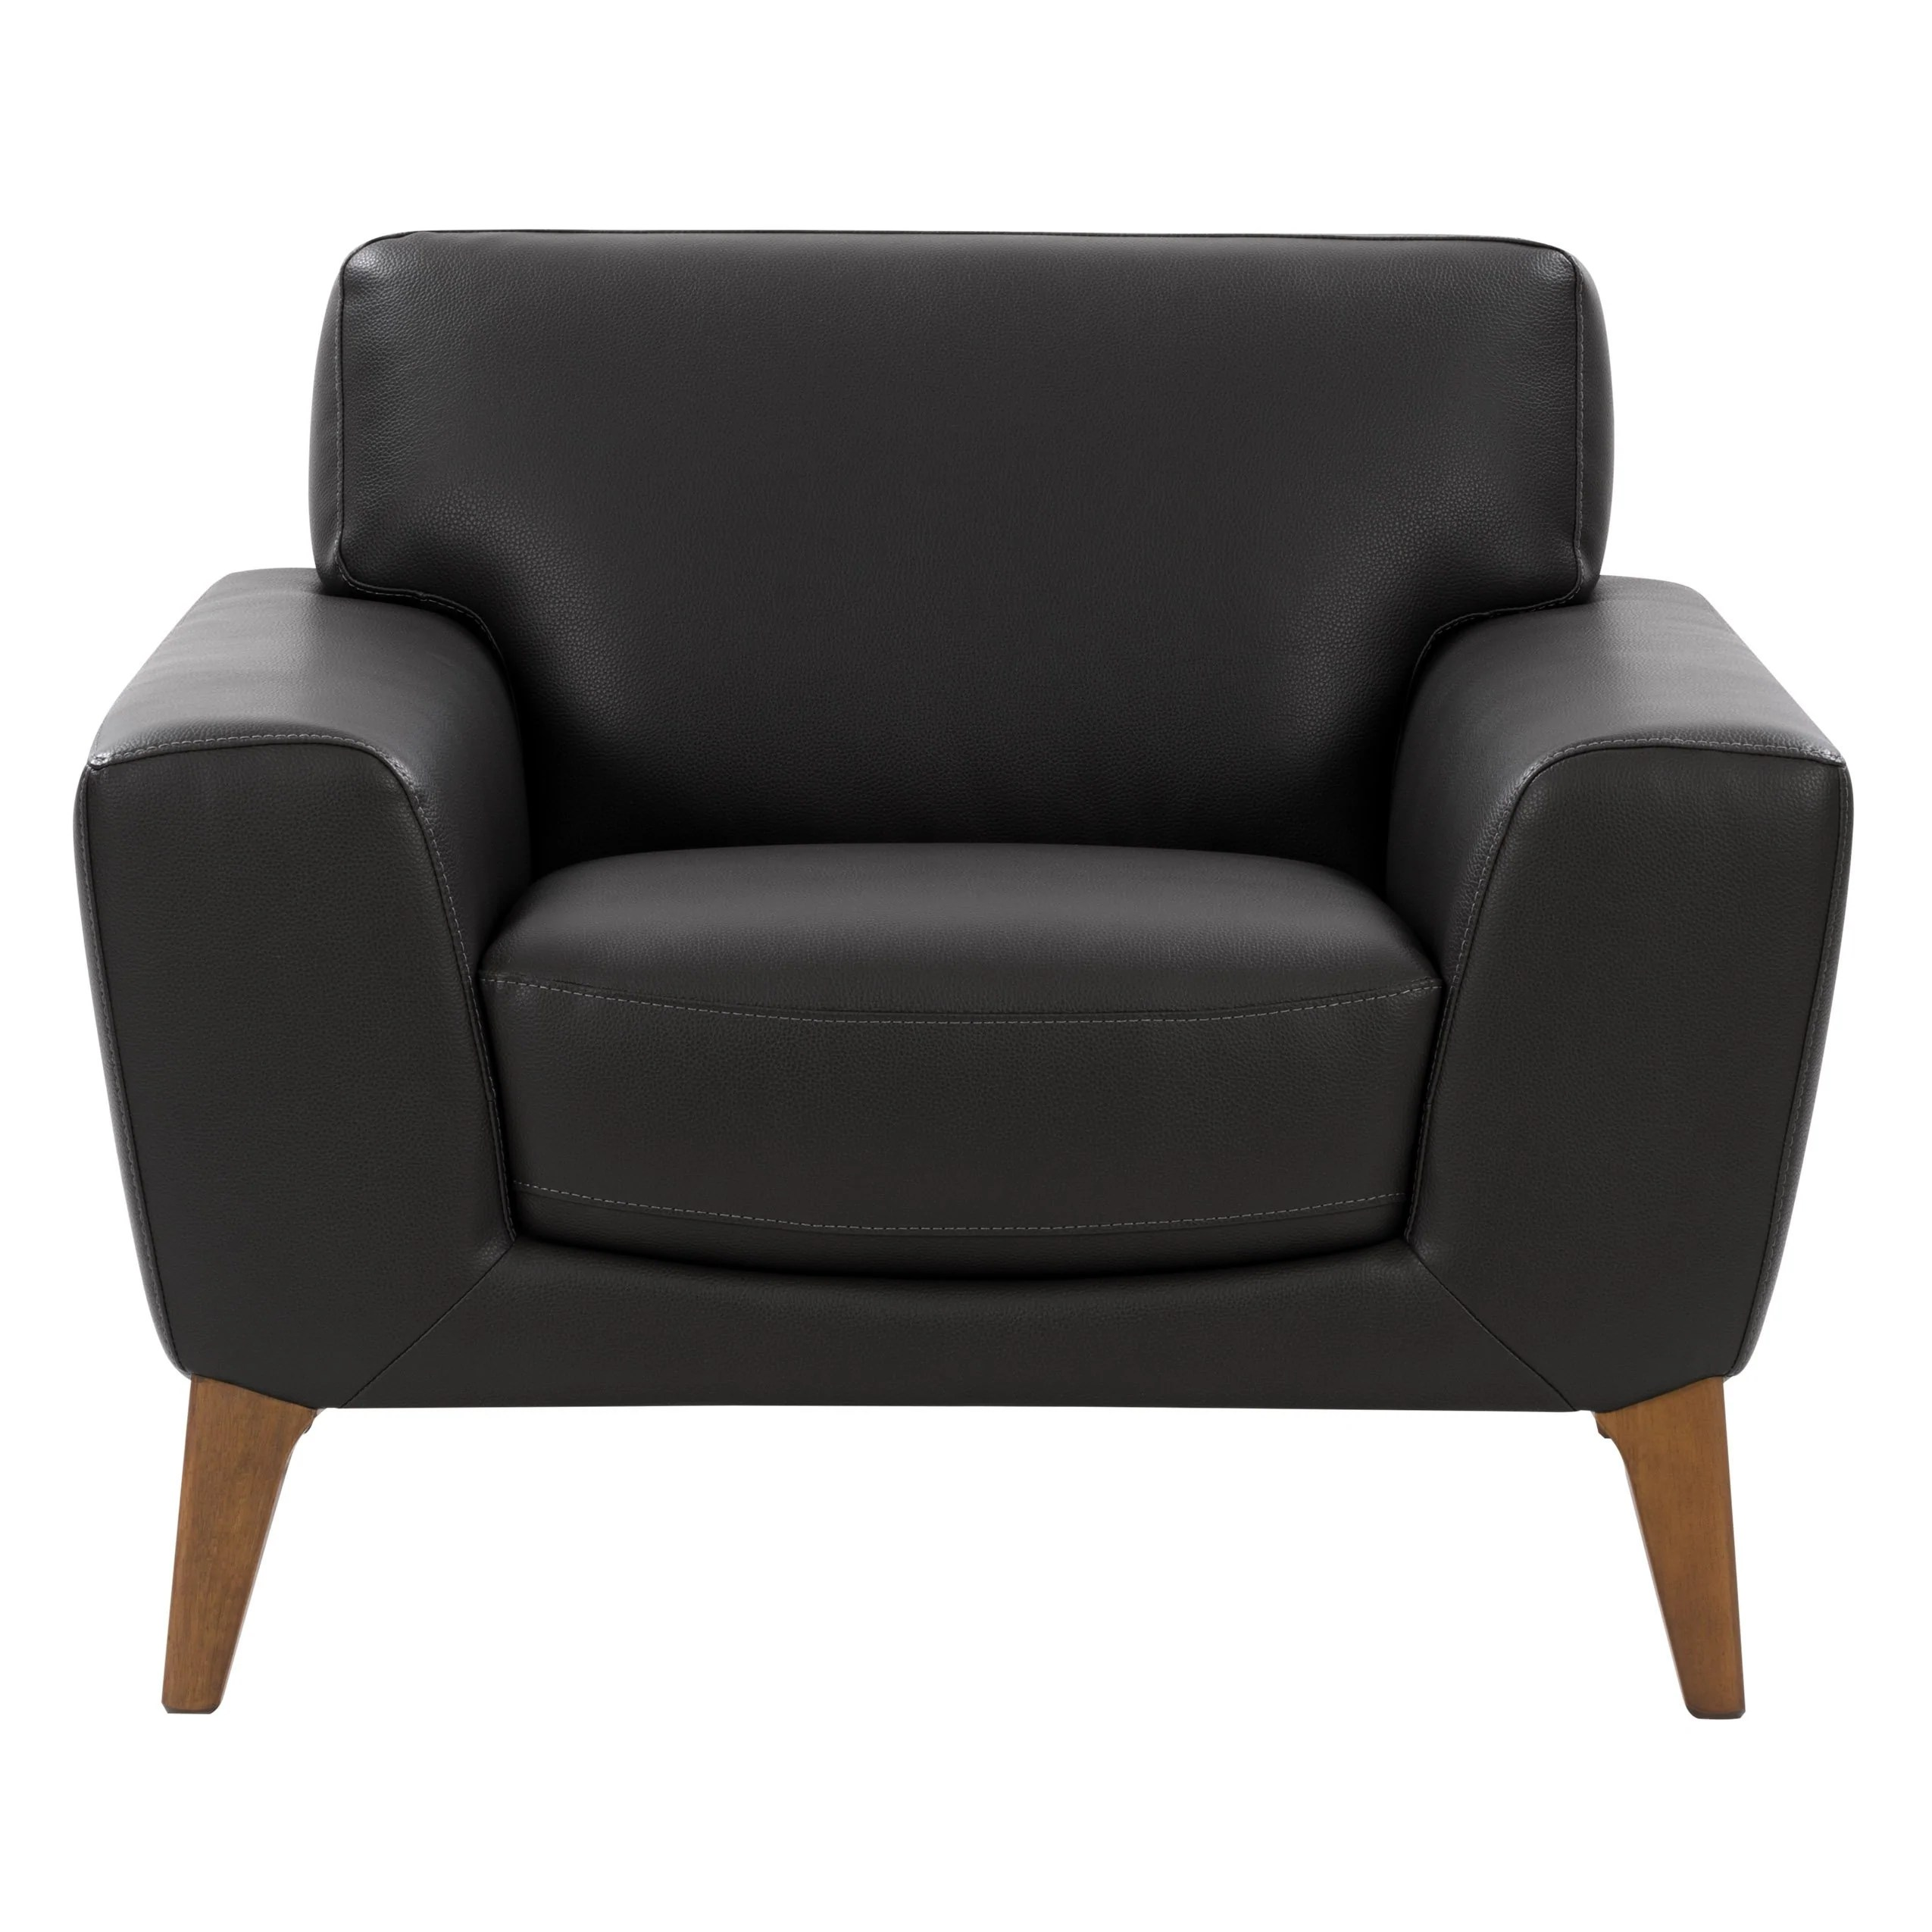 London Modern High Grade Luxury Faux Leather Chair Please Allow Ext Corliving Furniture Us